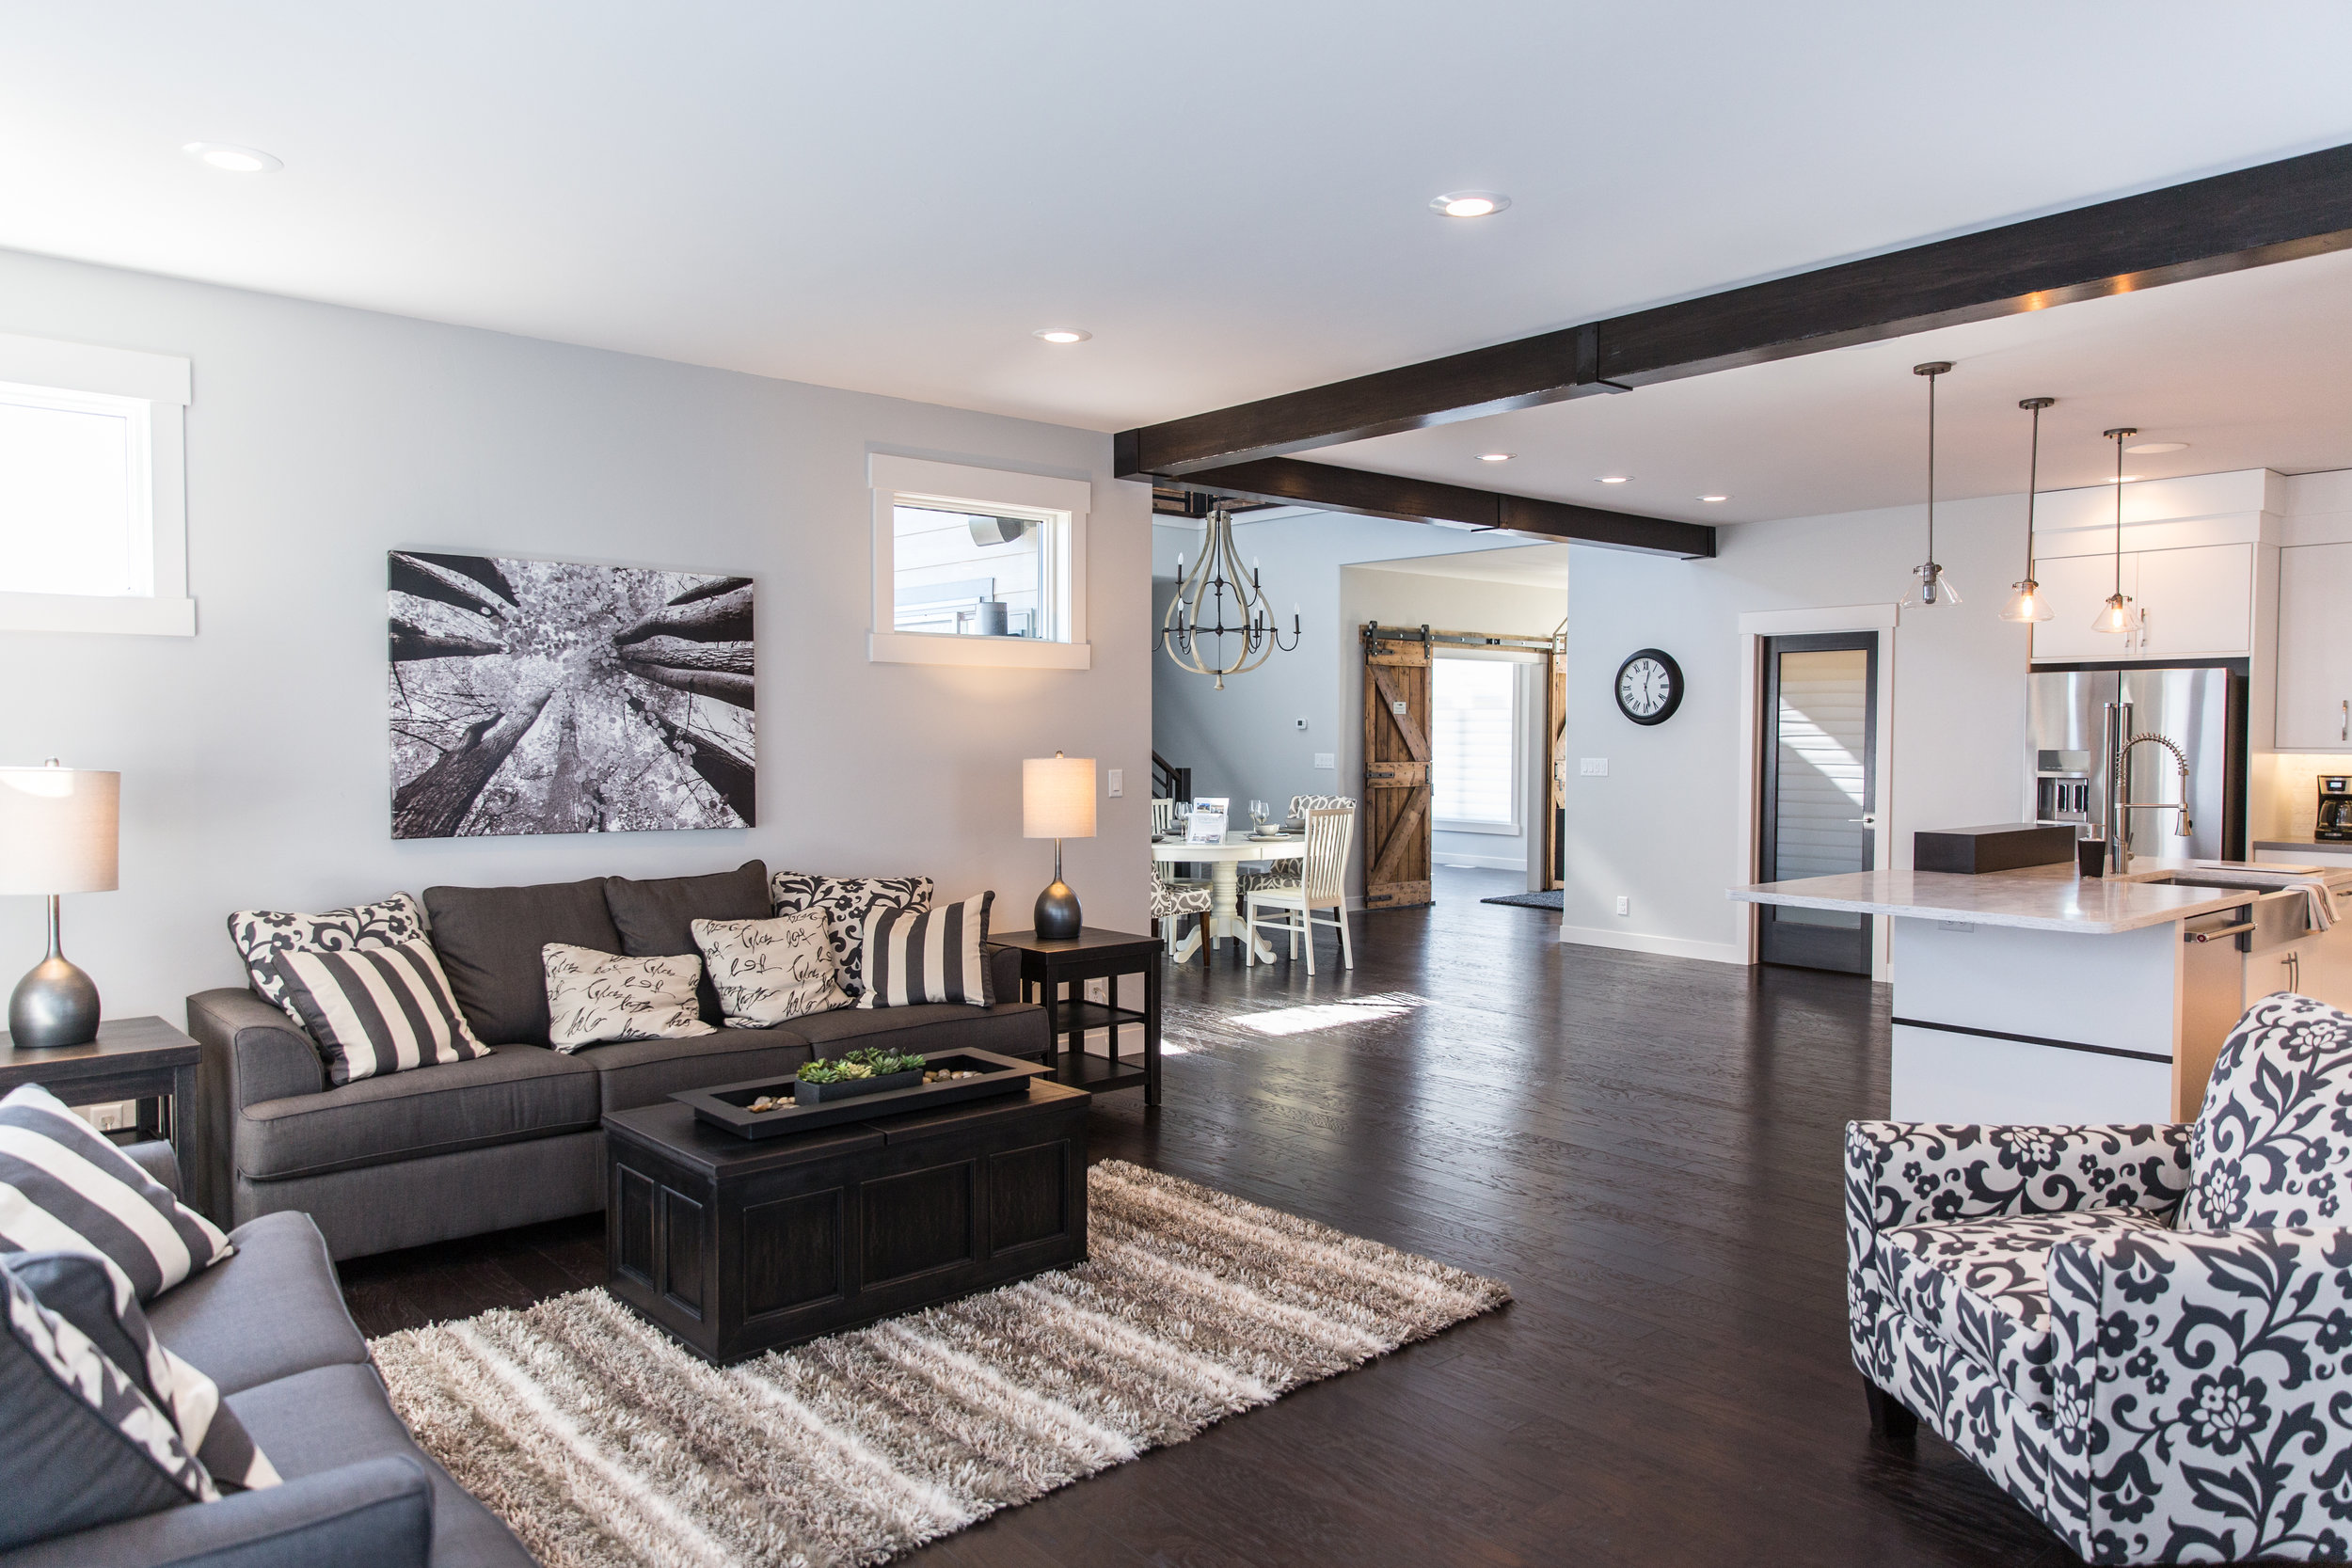 Over the past few months I have had the pleasure of photographing some stunning homes built by Pinnacle Homes. This particular home is being showcased in the Fall Parade of Homes. House #26 located at 3621 Valley Drive, Bismarck,features 4 Bedrooms and 3 Bathrooms. This home is modern with a rustic twist that is sure to impress.